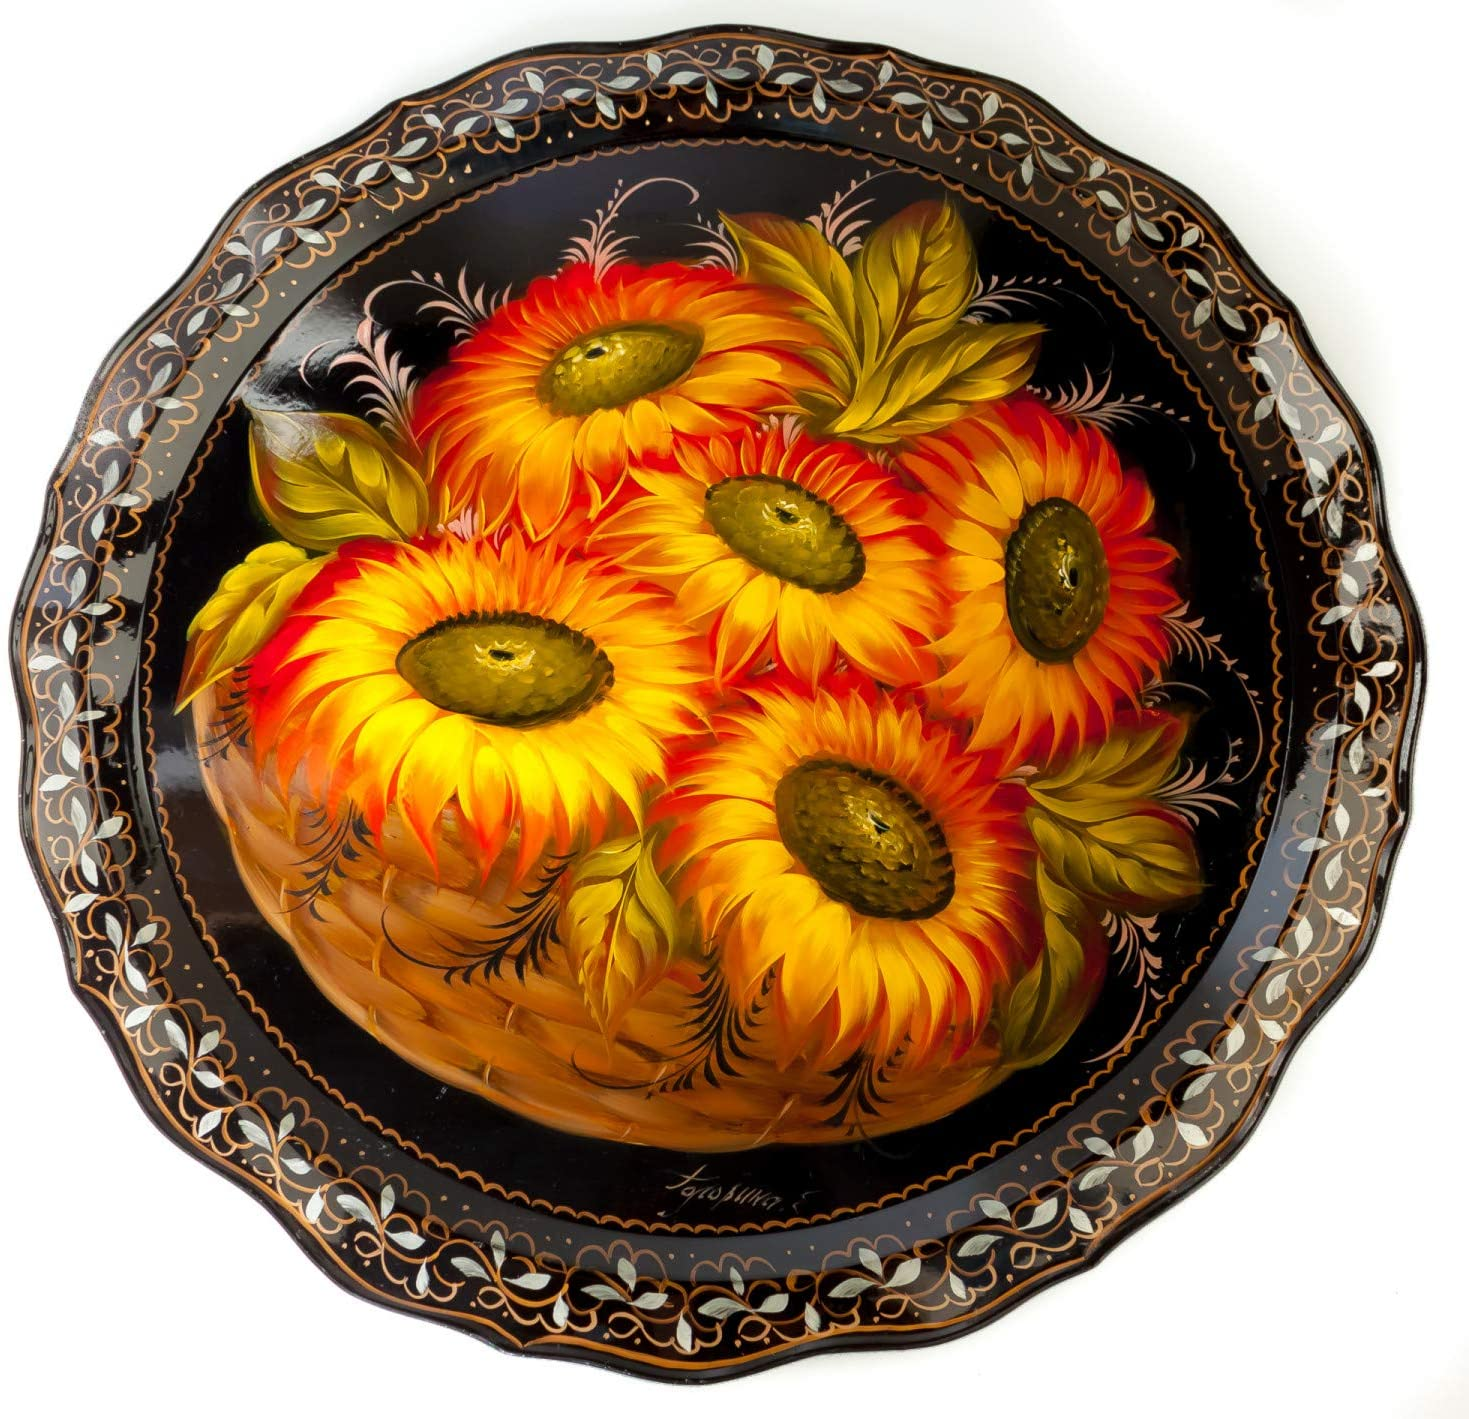 d 420 mm Sun Flowers & Zhostovo Patterns Hand Painted and Lacquered by Golovina Metal Forged Tray